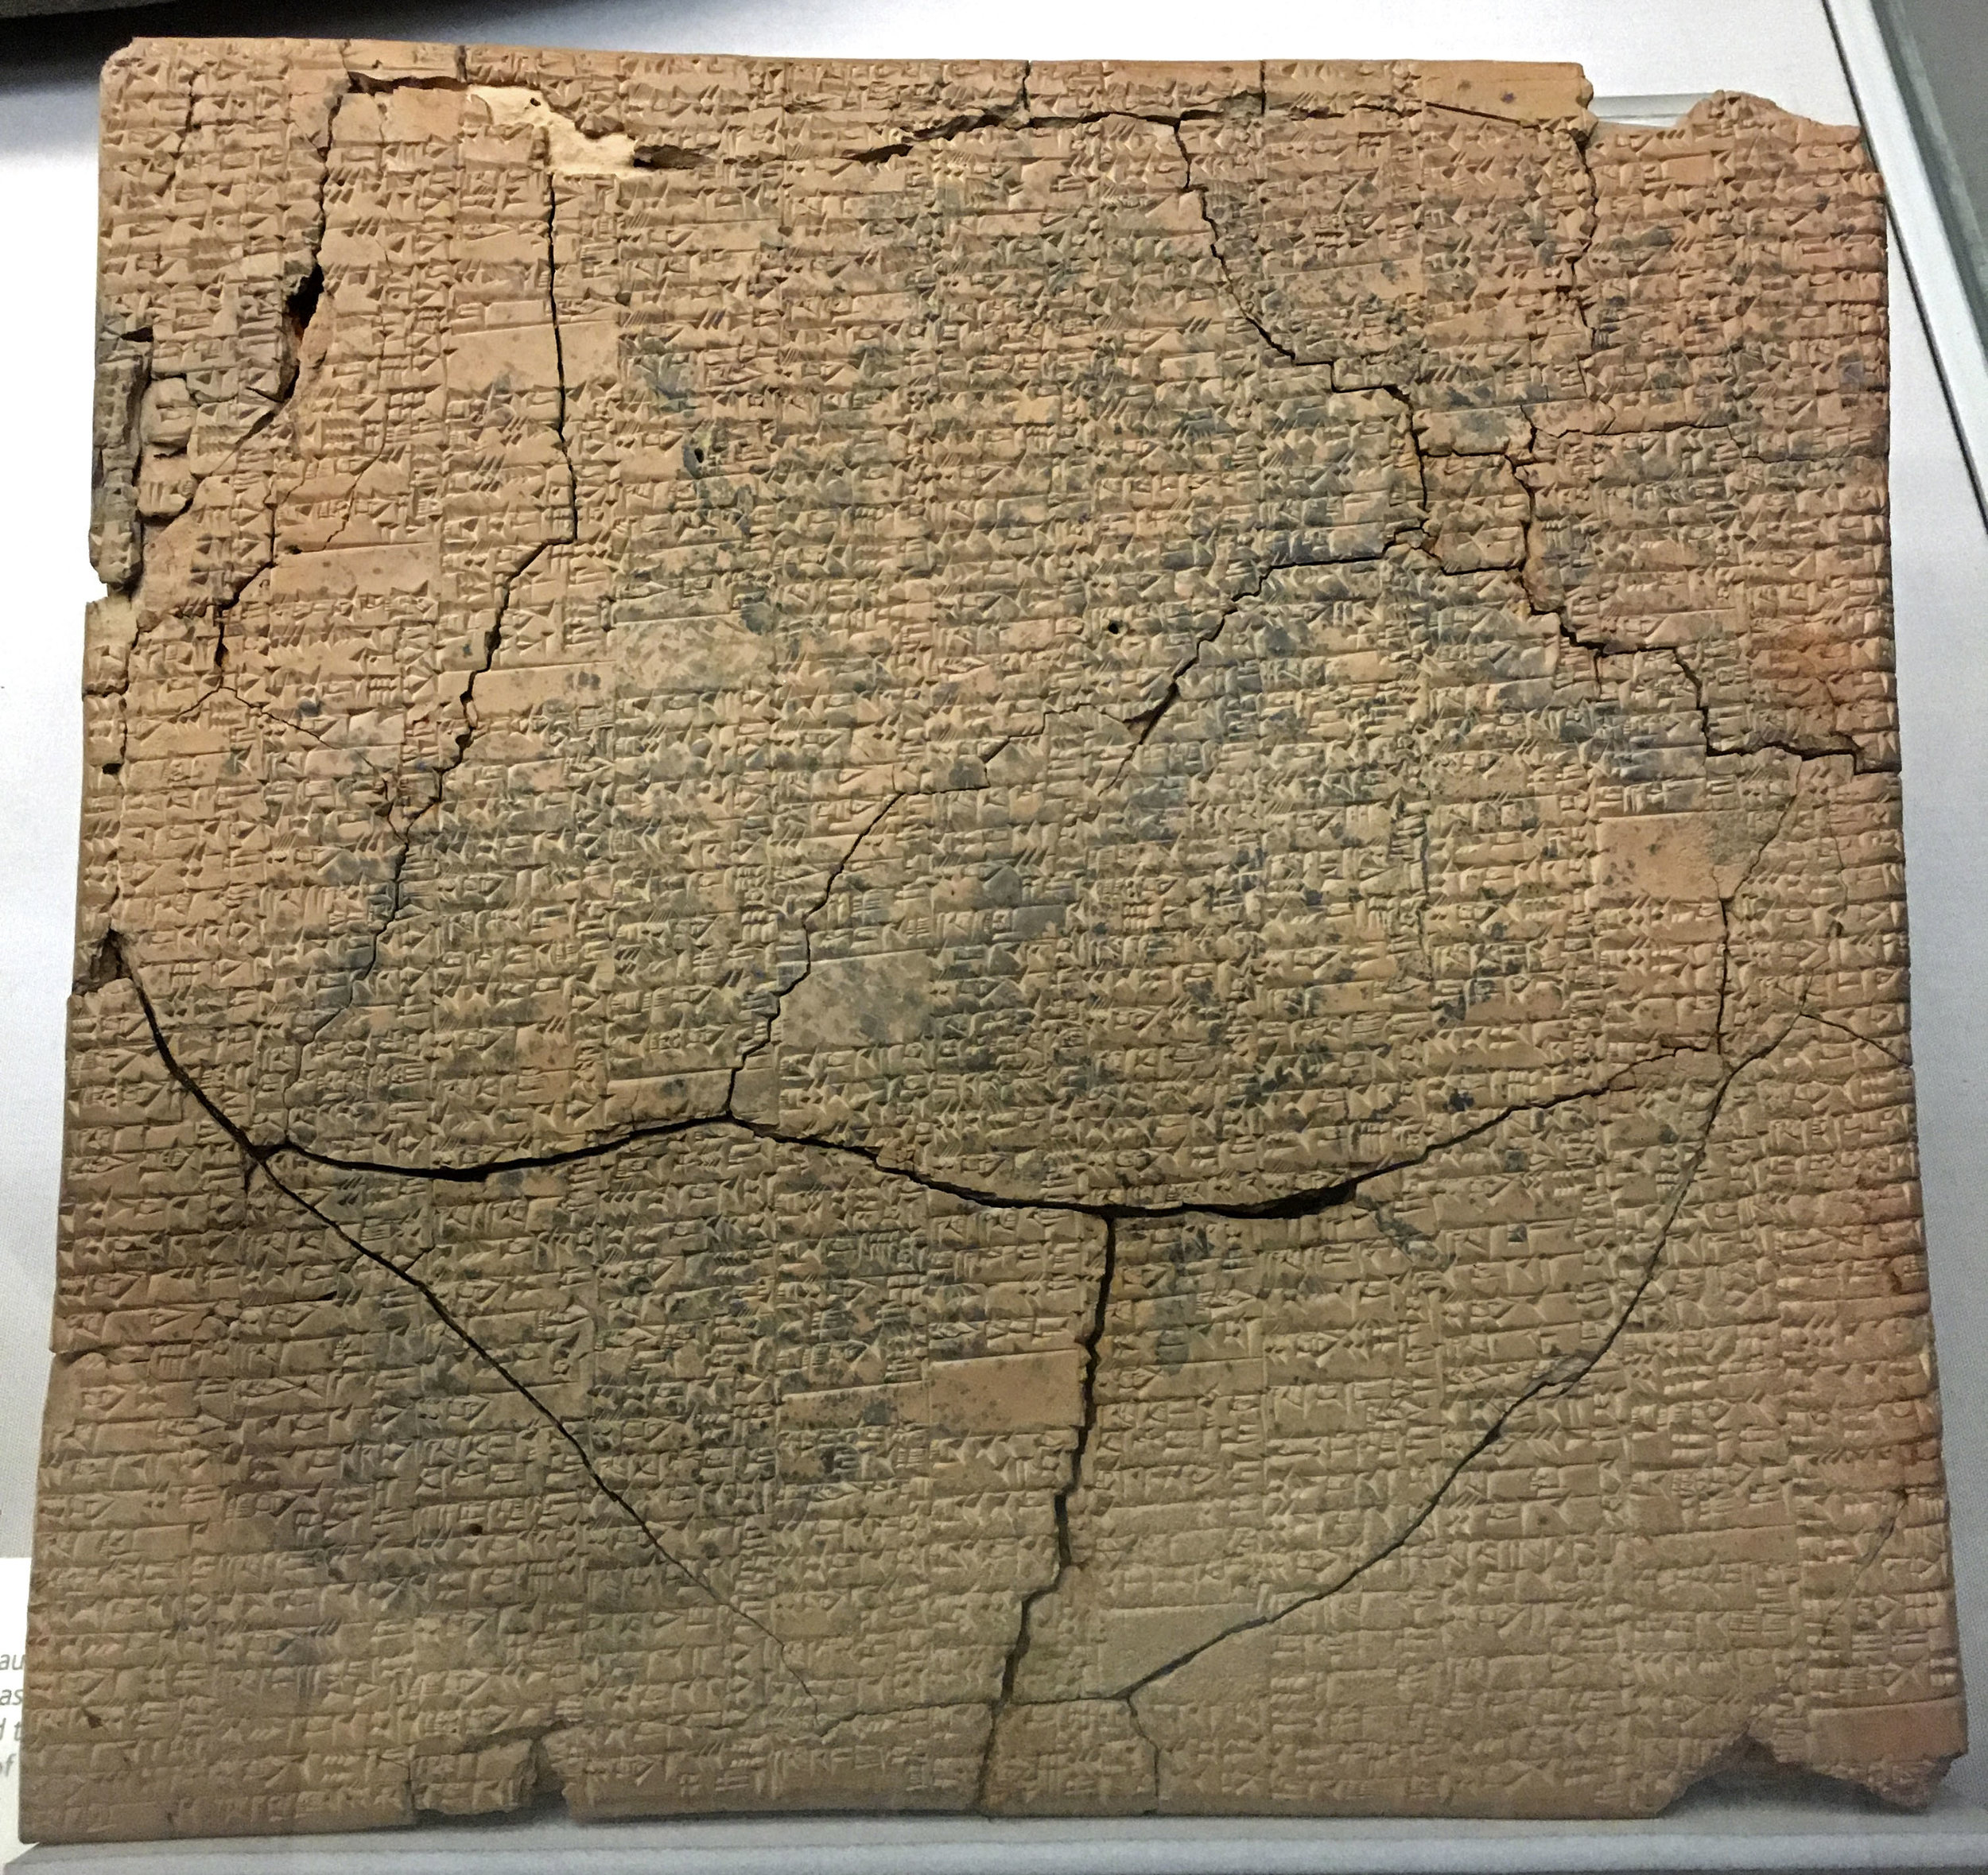 Babylonian clay cuneiform tablet, the British Museum.